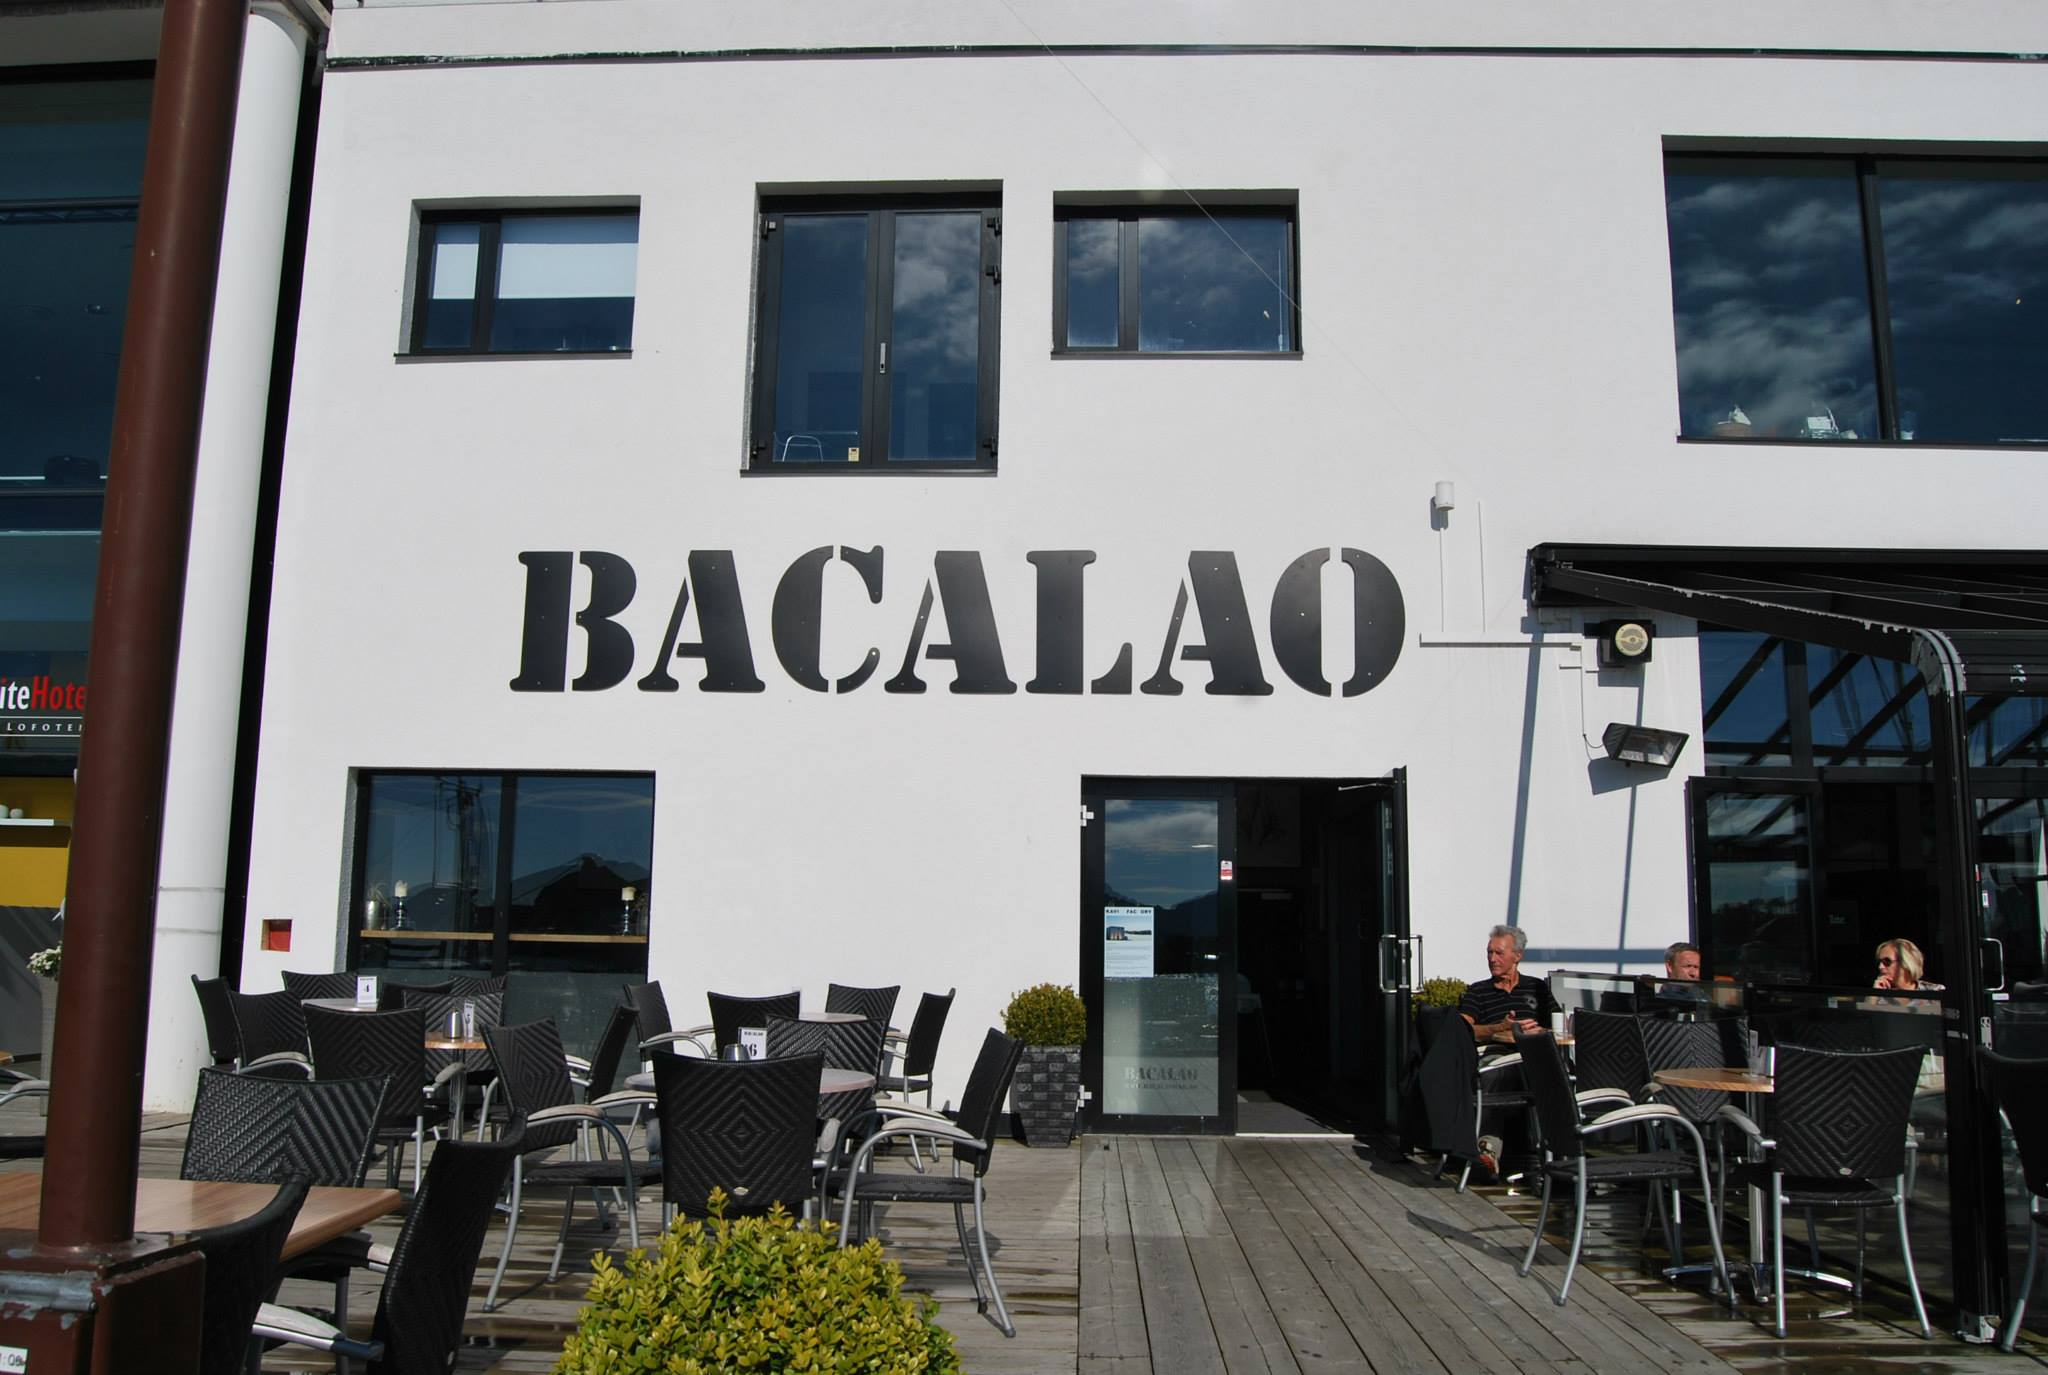 Bacalao resturant